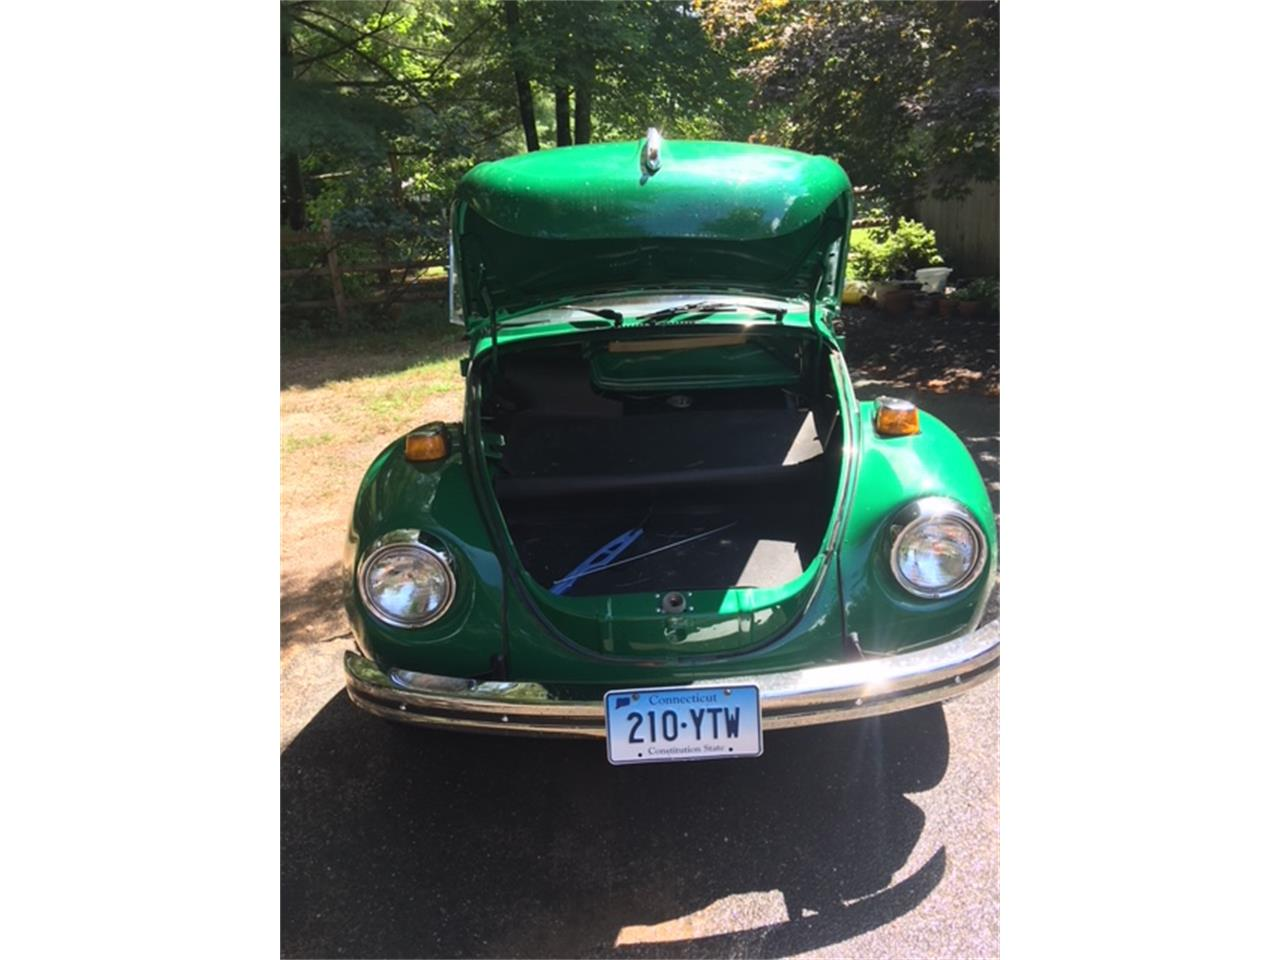 Large Picture of '73 Volkswagen Super Beetle located in Avon Connecticut Offered by a Private Seller - P0X2